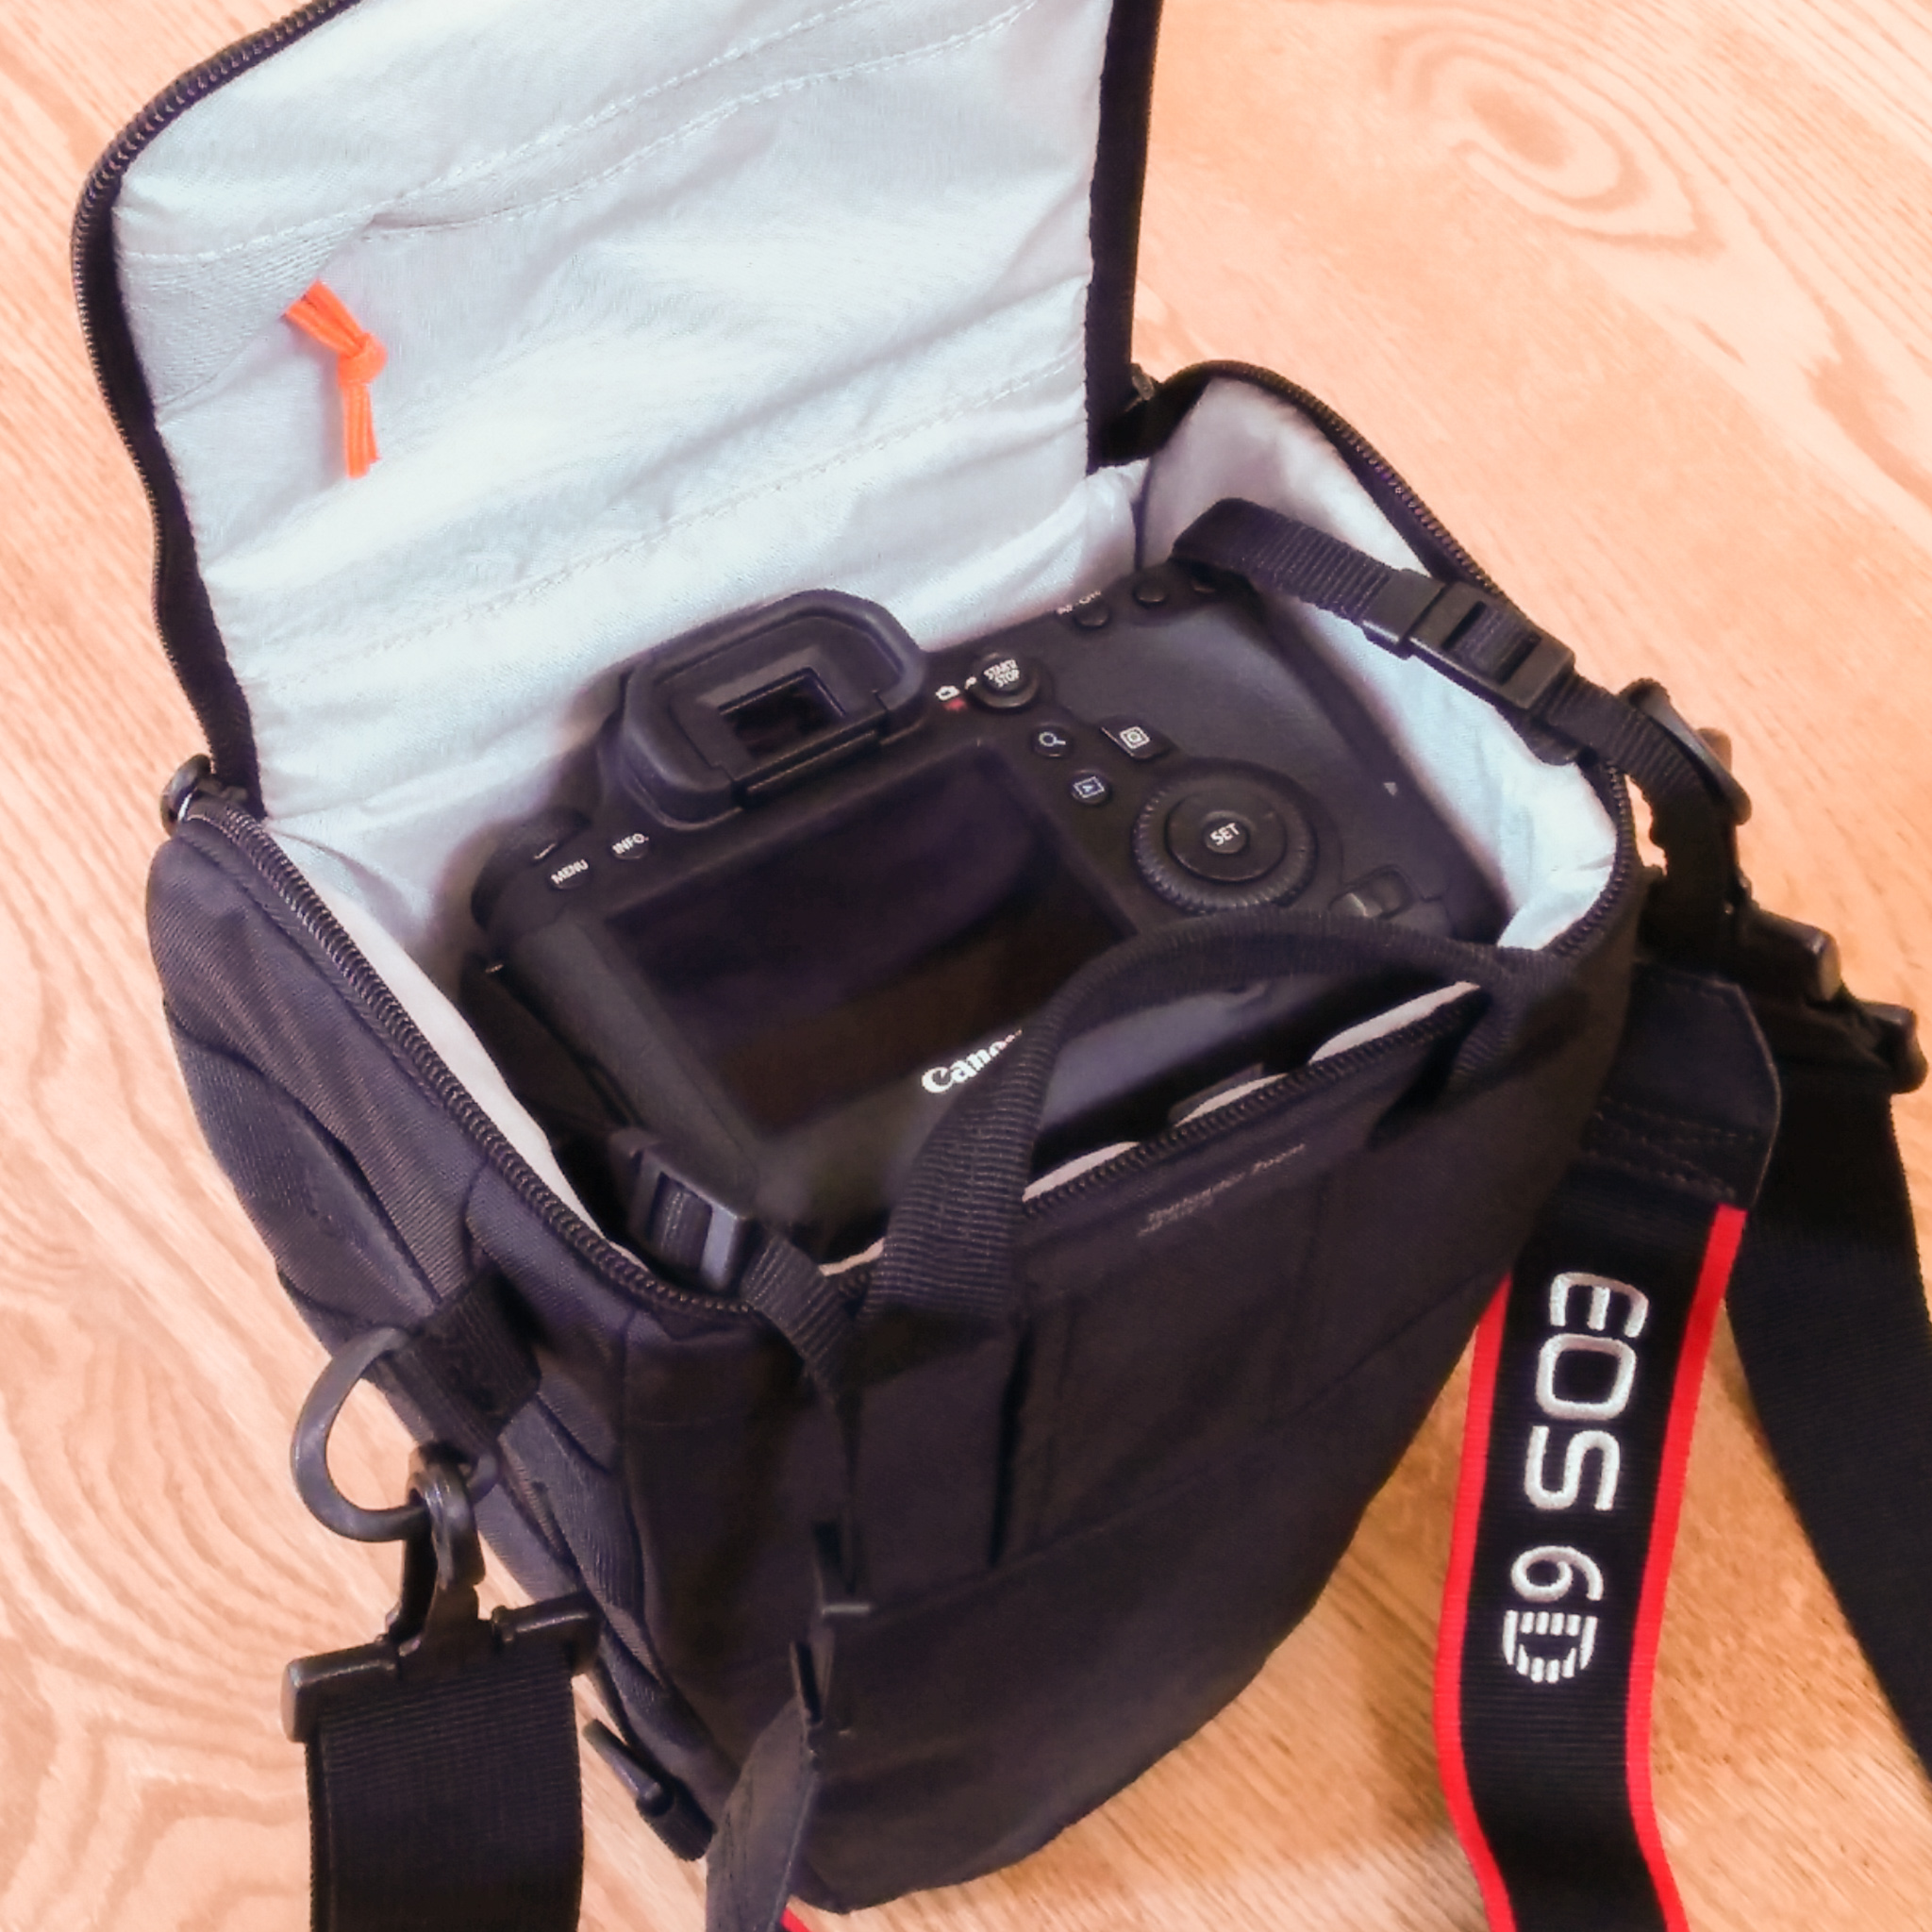 Re Small Day Bag For Canon 6d 24 105 L Eos 1d 5d Lowepro Toploader Zoom 55 Aw Ii Black View Original Size Undah Wrote I Was Looking At The